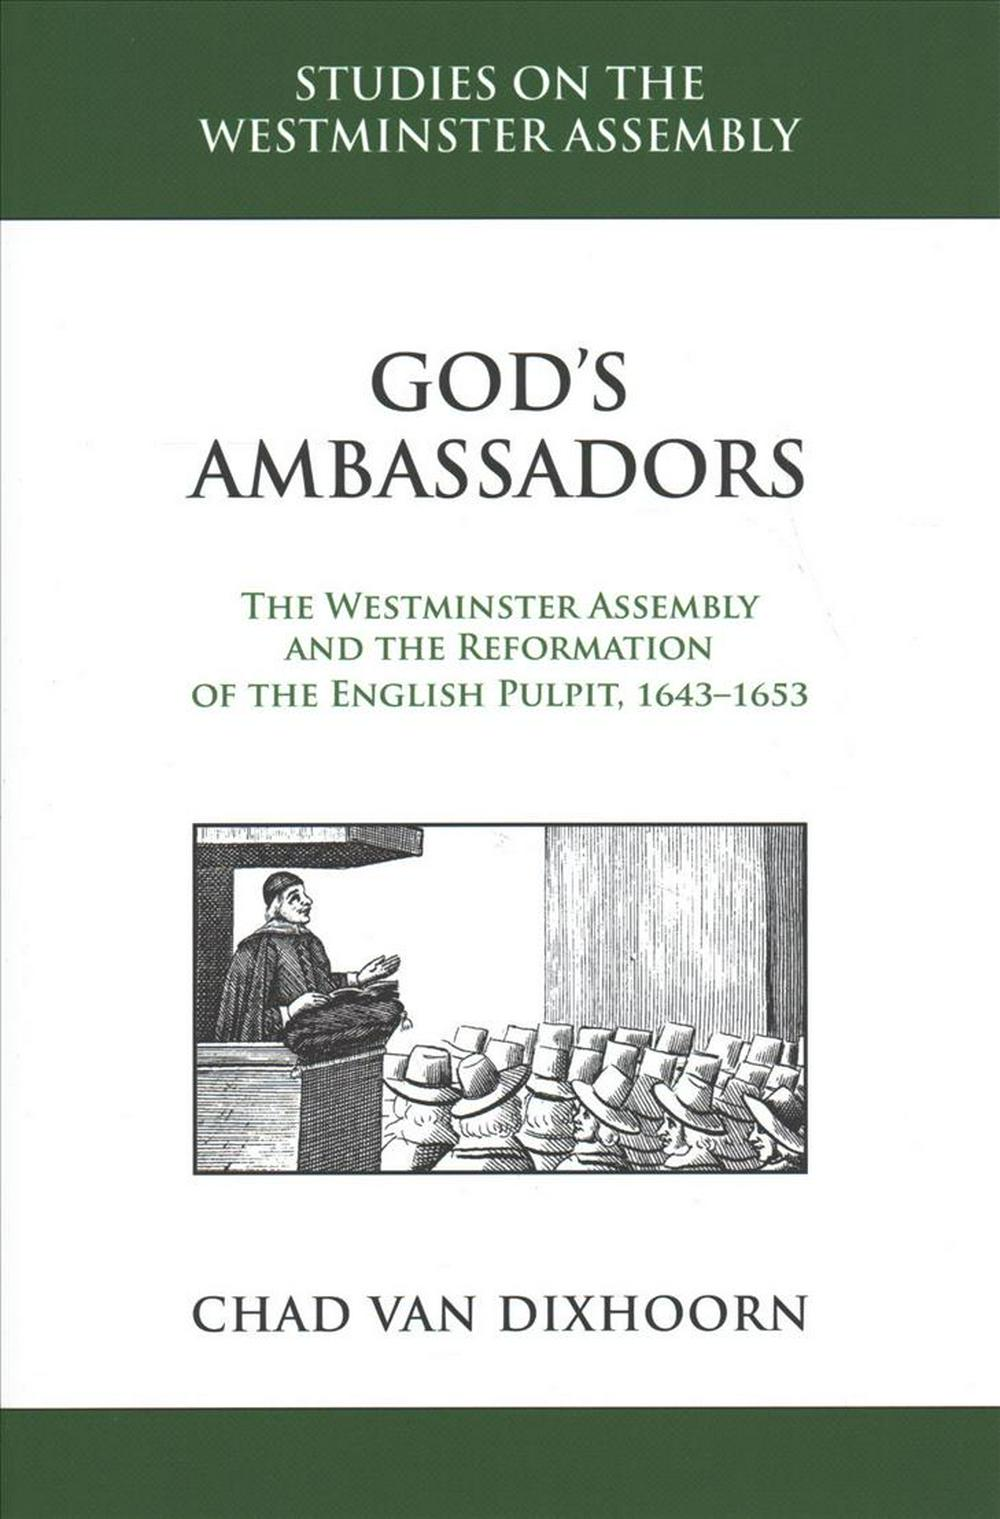 God's Ambassadors: The Westminster Assembly and the Reformation of the English Pulpit, 1643-1653 by Chad Van Dixhoorn, ISBN: 9781601785343